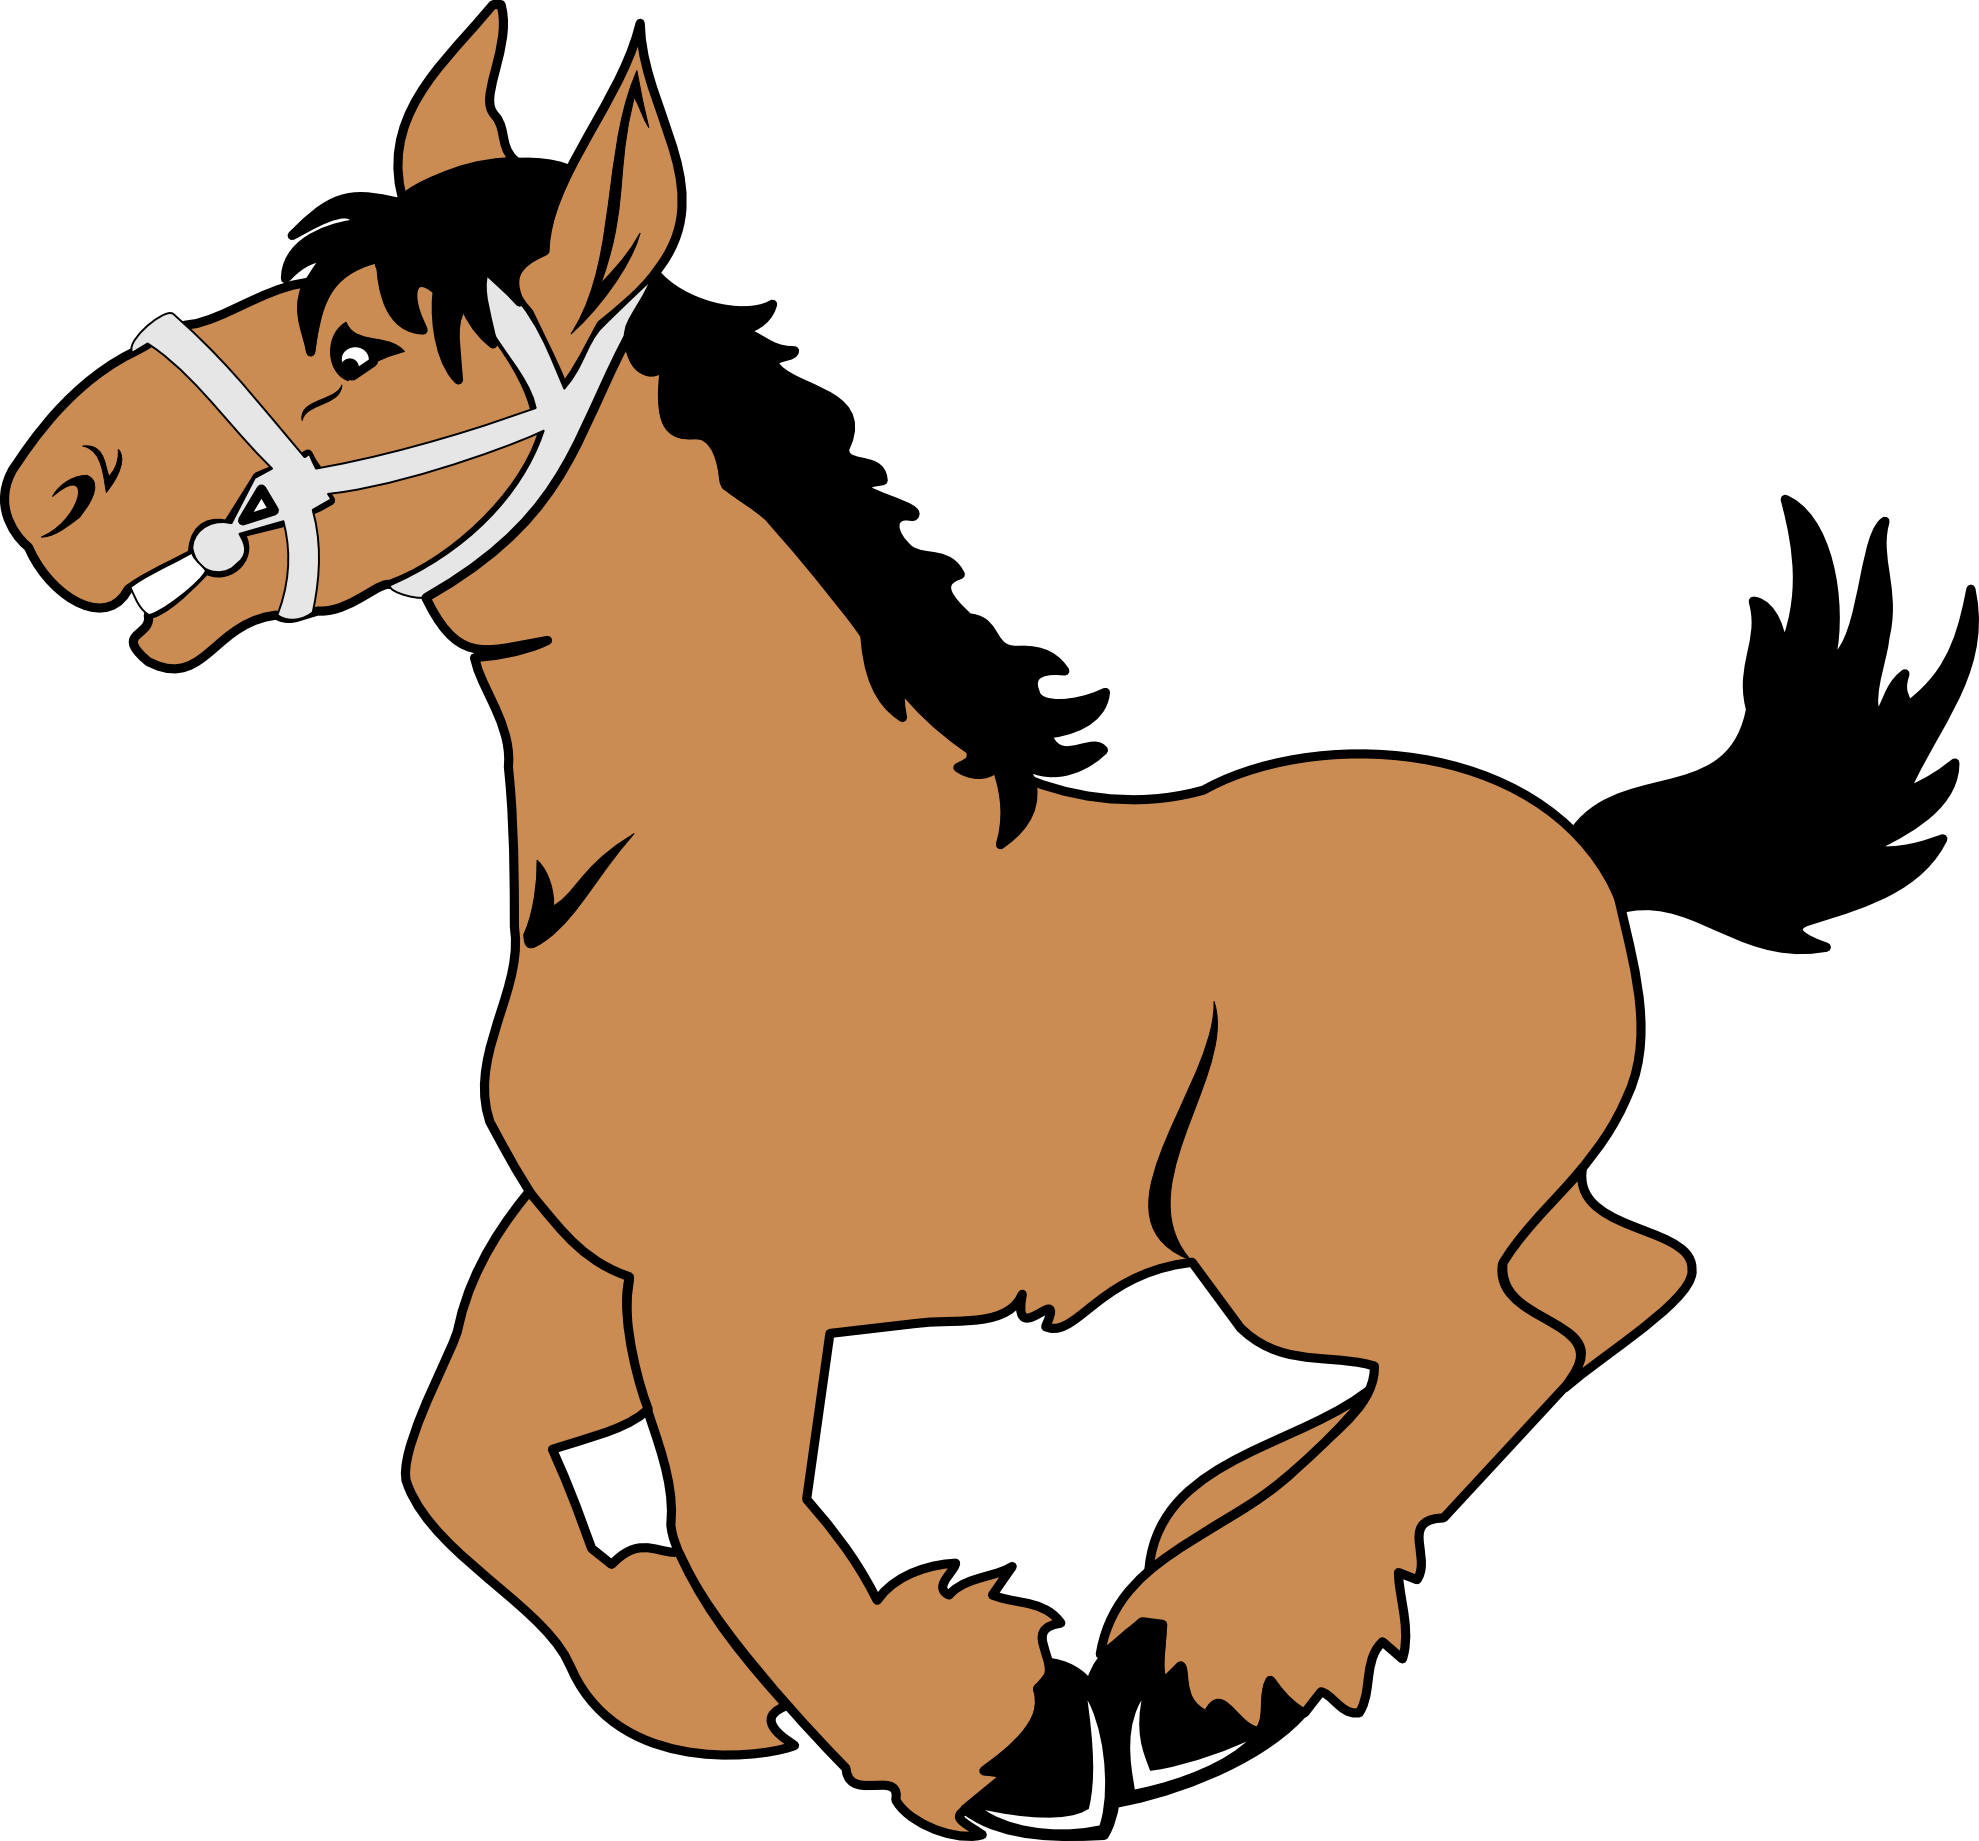 Anime clipart horse rider Images Horse Quarter art clipart